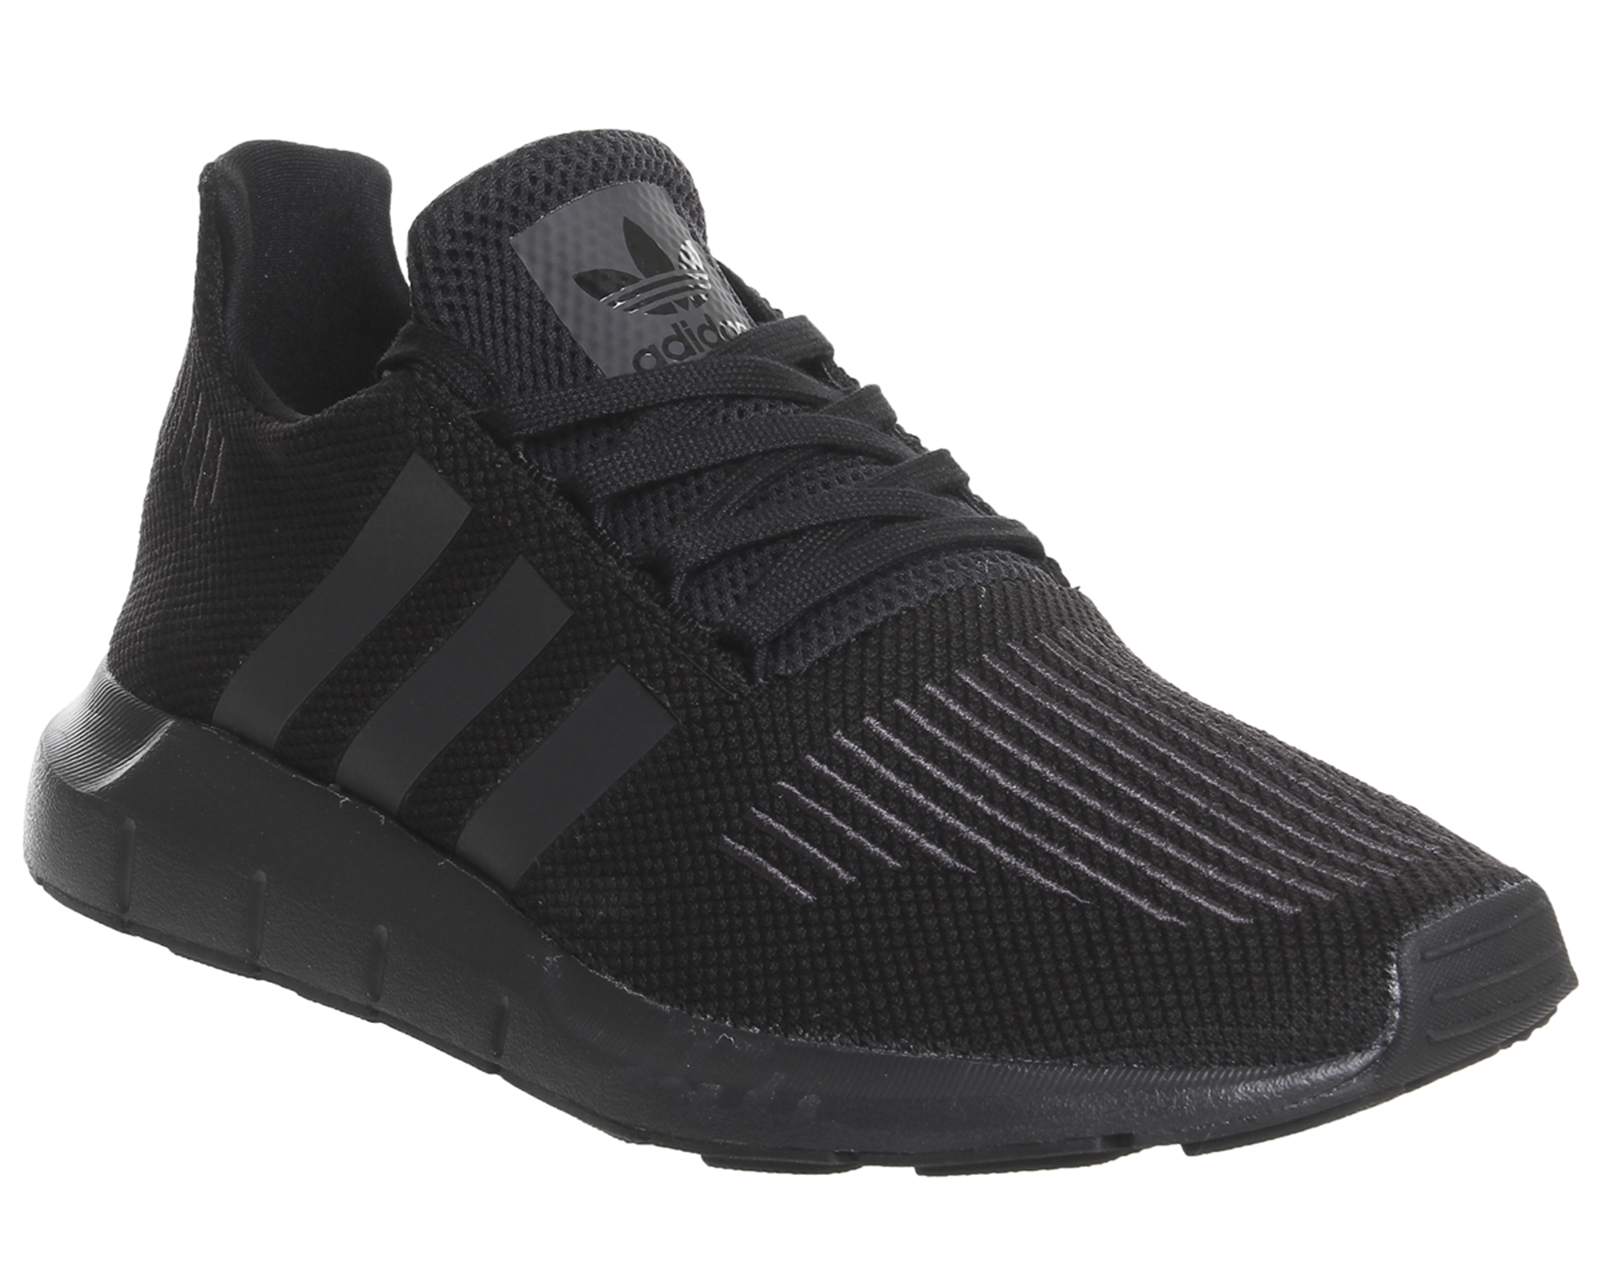 e7a92246c7a Sentinel Womens Adidas Swift Run Black Mono Trainers Shoes